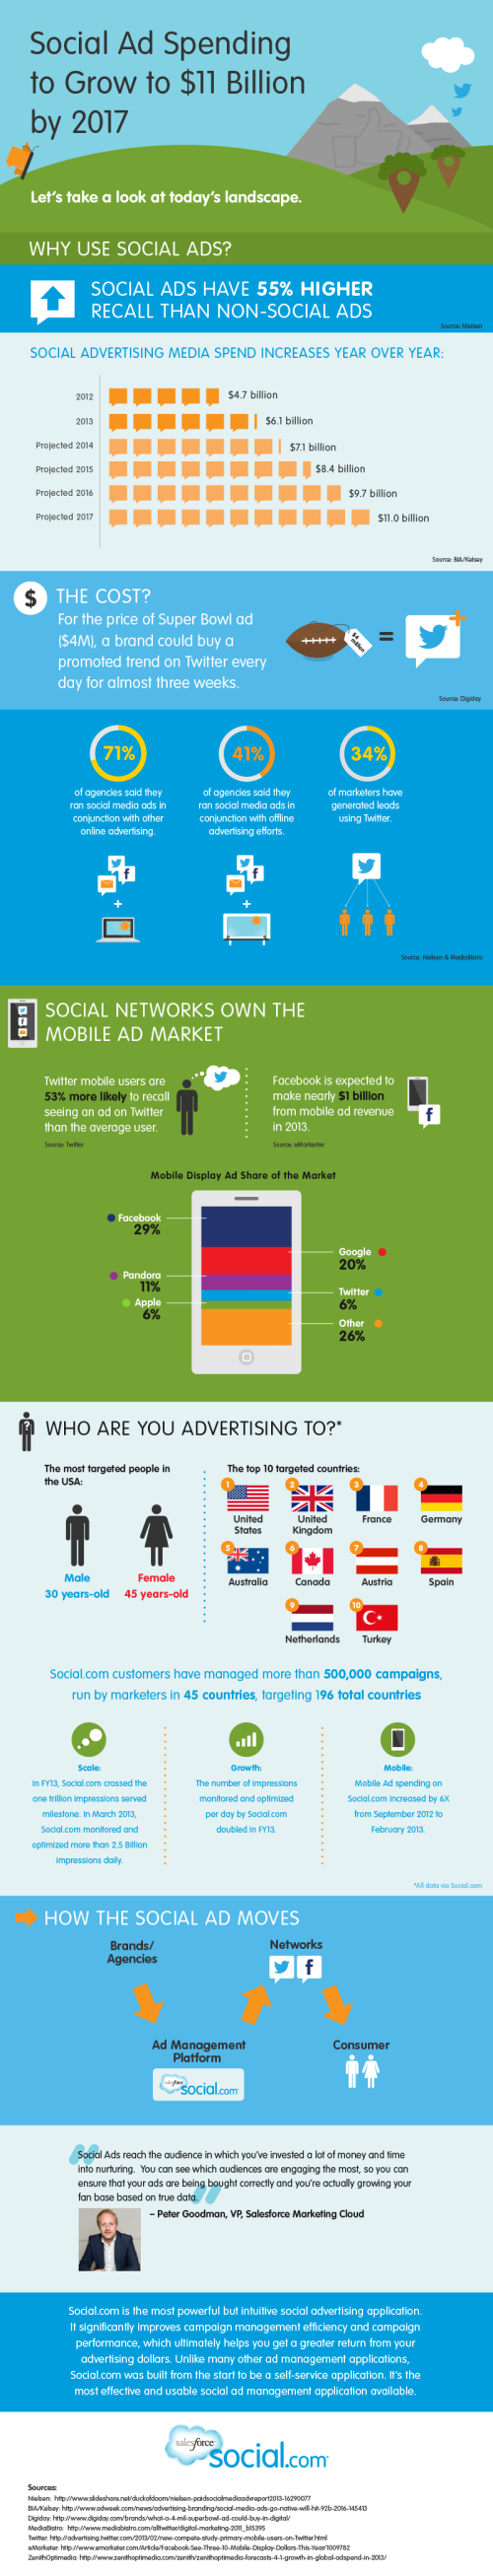 Social-Media-Ads-Infographic